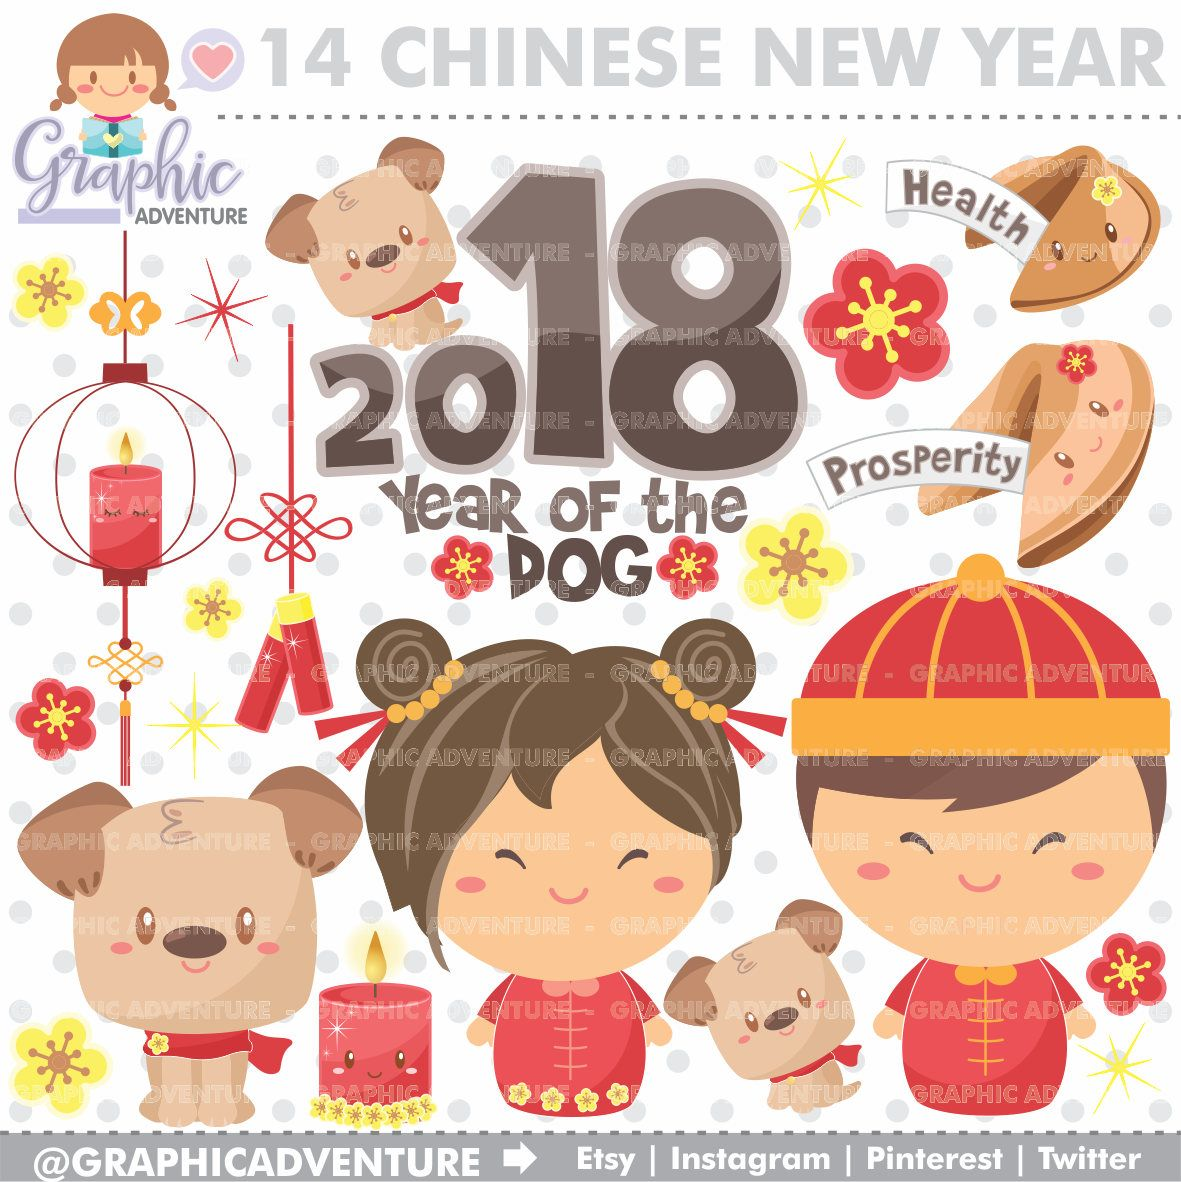 75off chinese new year clipart commercial use chinese new year of the dog clipart year of the dog clipart new year of the dog clipart